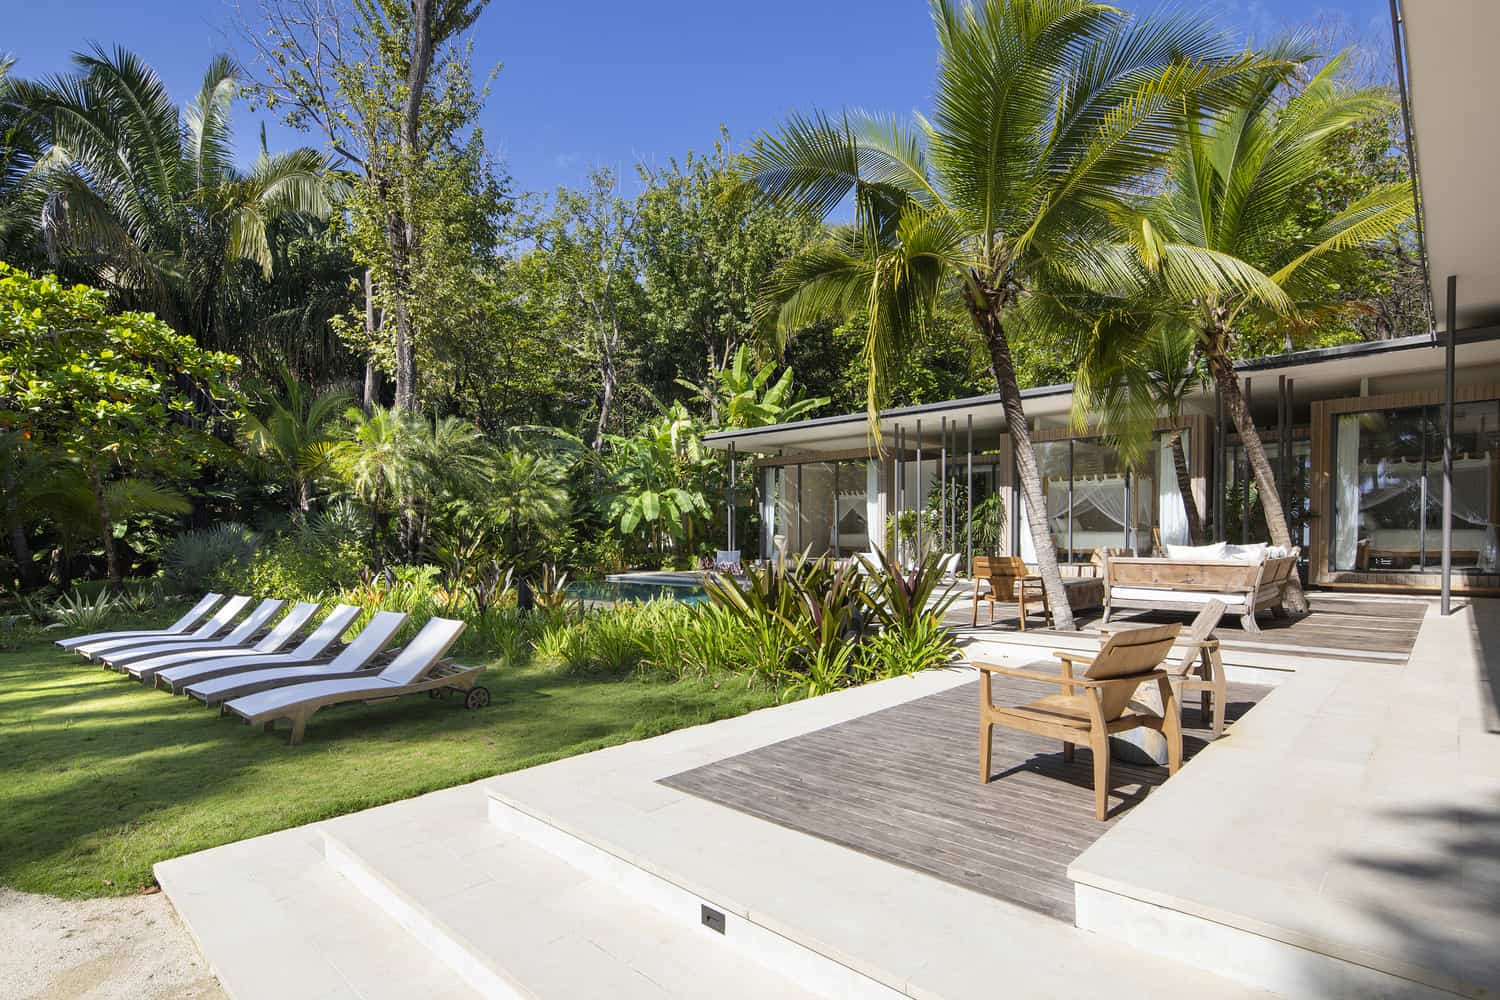 beach-house-patio-surrounded-by-jungle